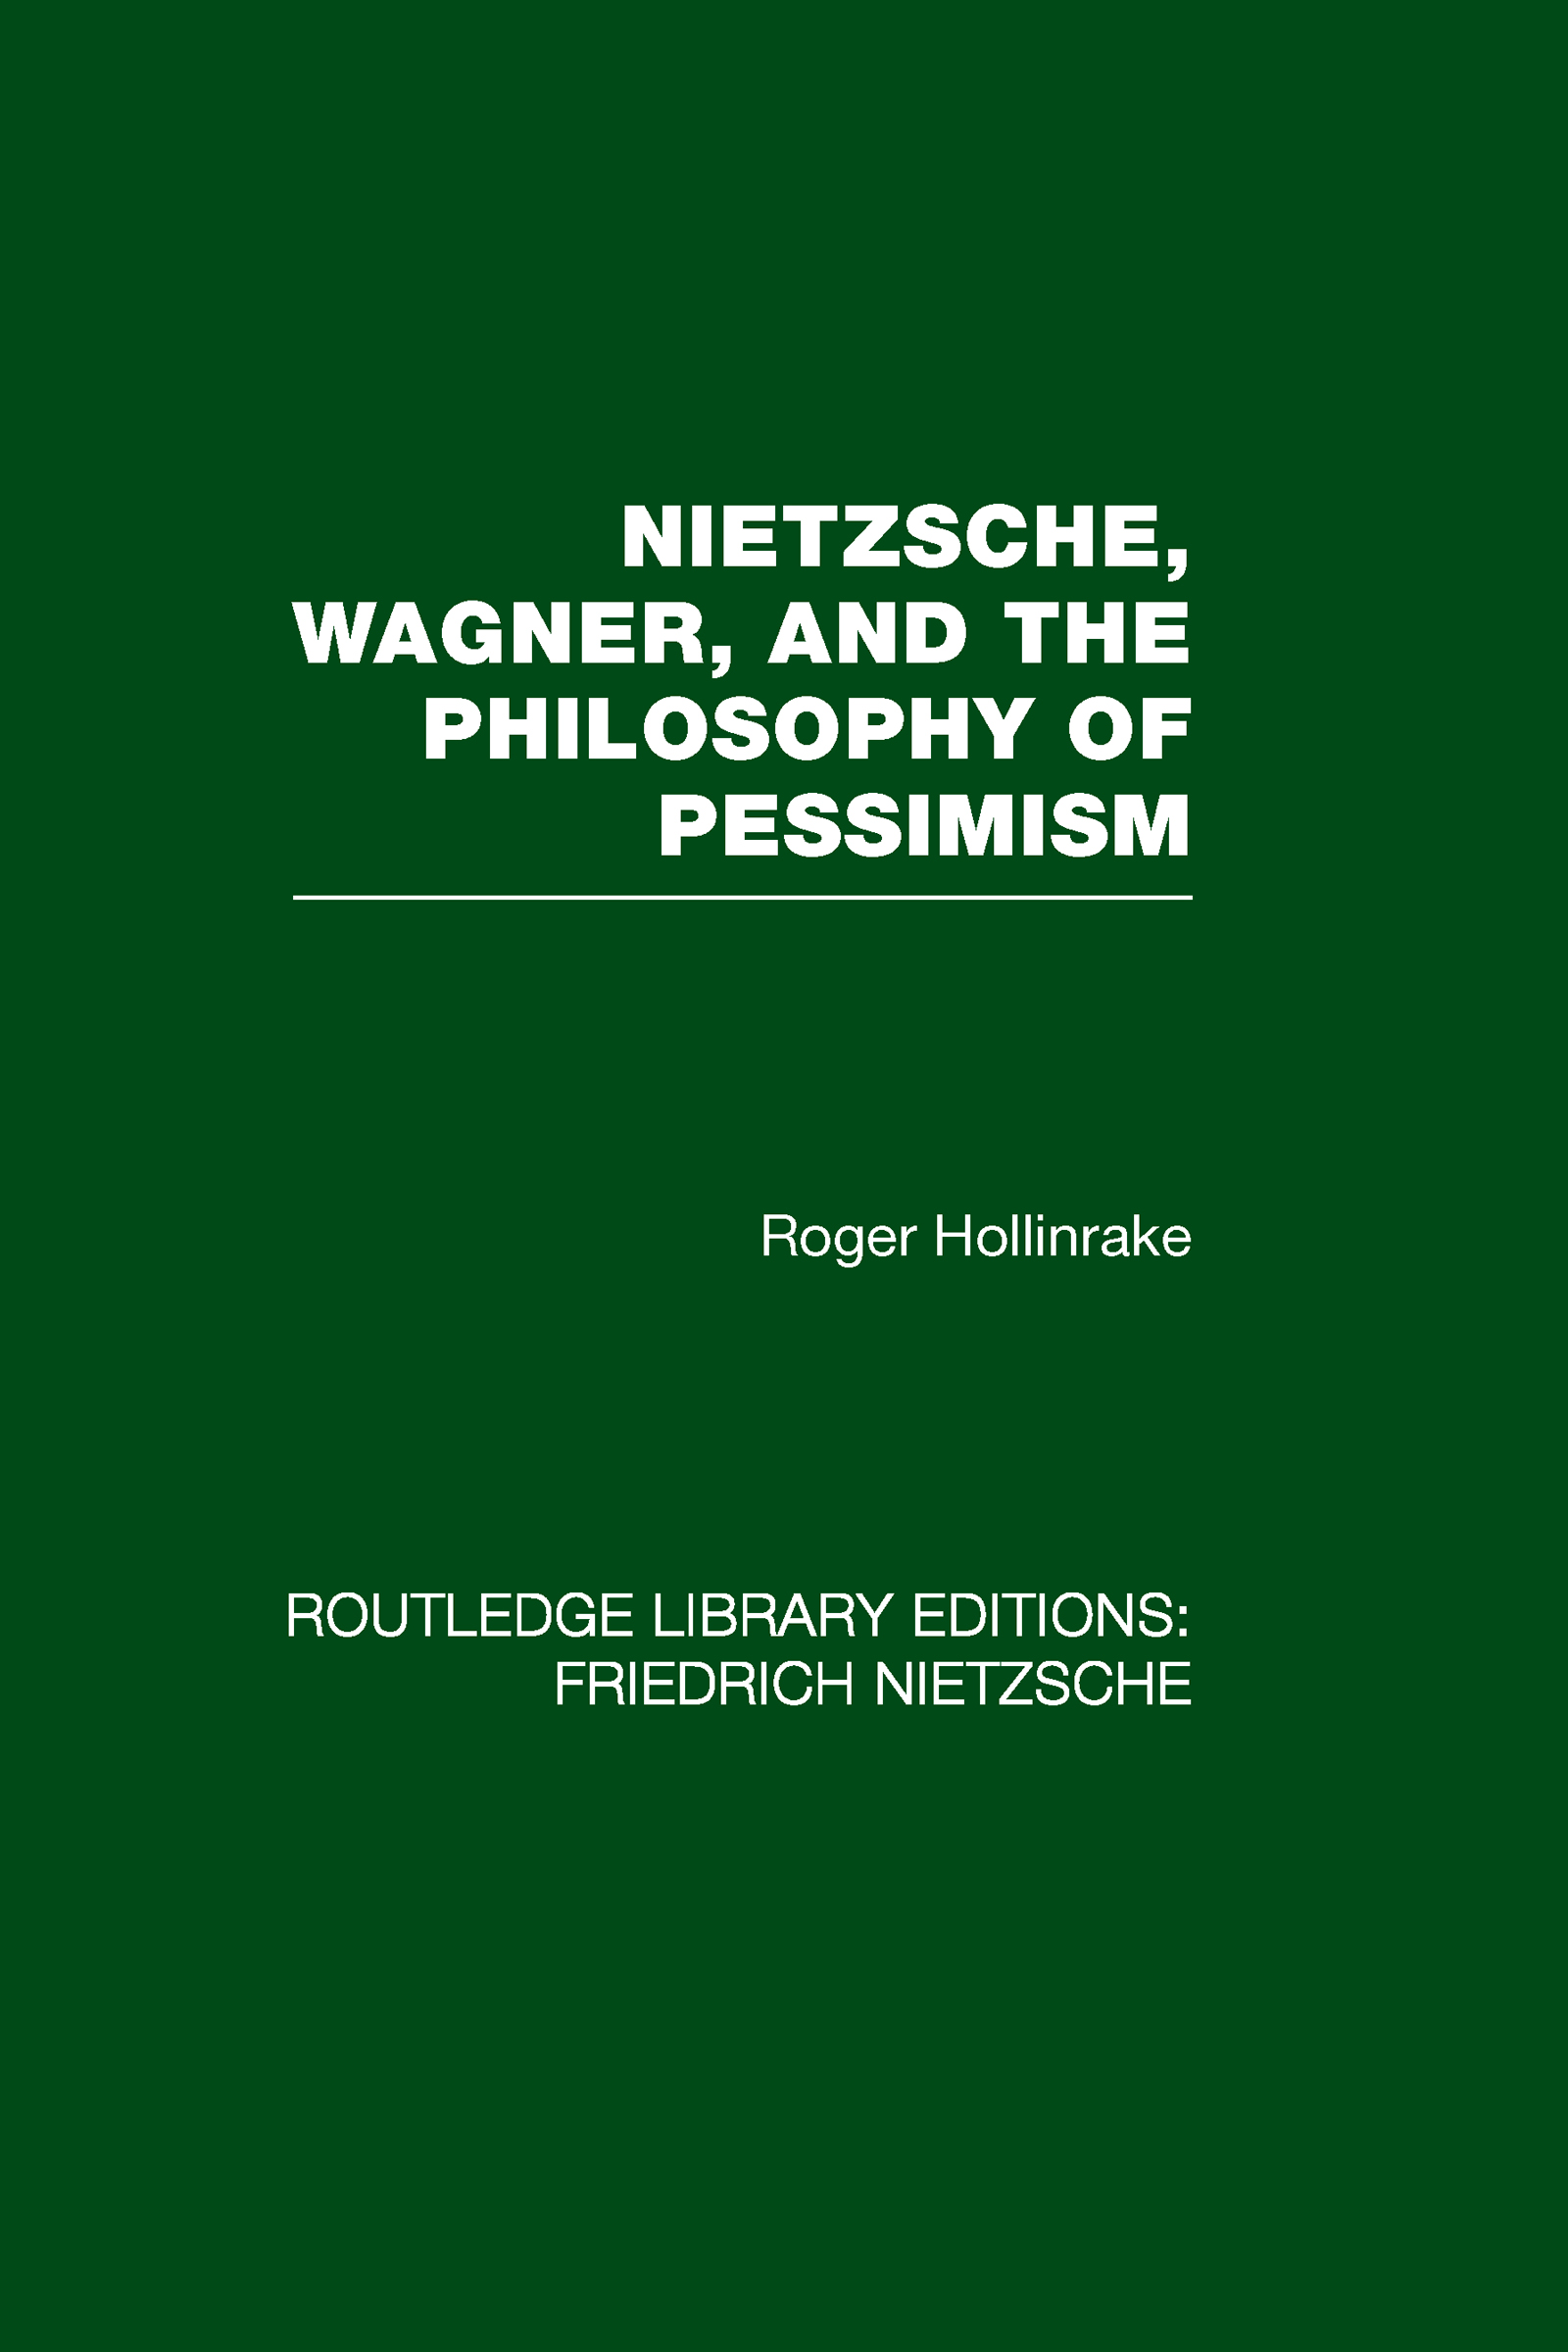 Nietzsche, Wagner and the Philosophy of Pessimism book cover